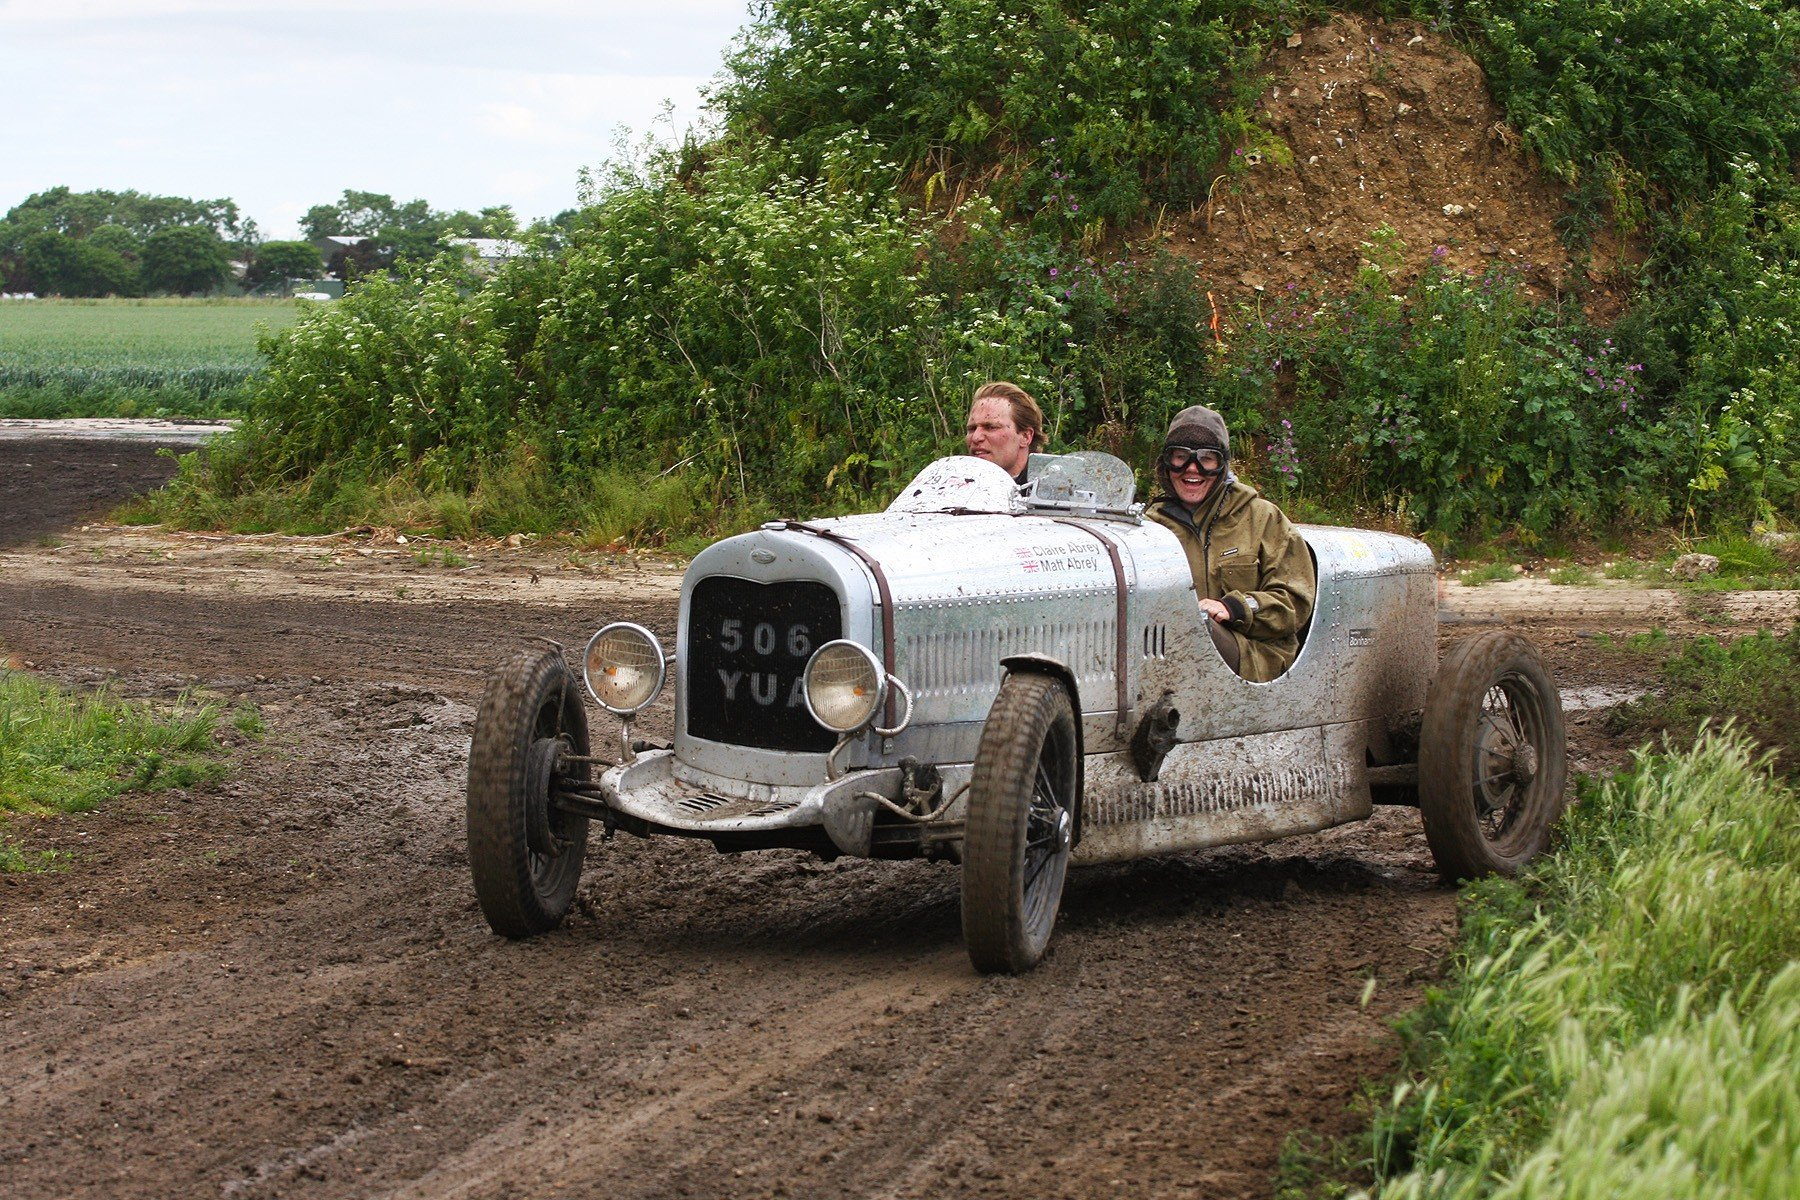 Matt Abrey's Ford Model A Special - Photo by M&H Photography, http://www.mandh-photography.co.uk